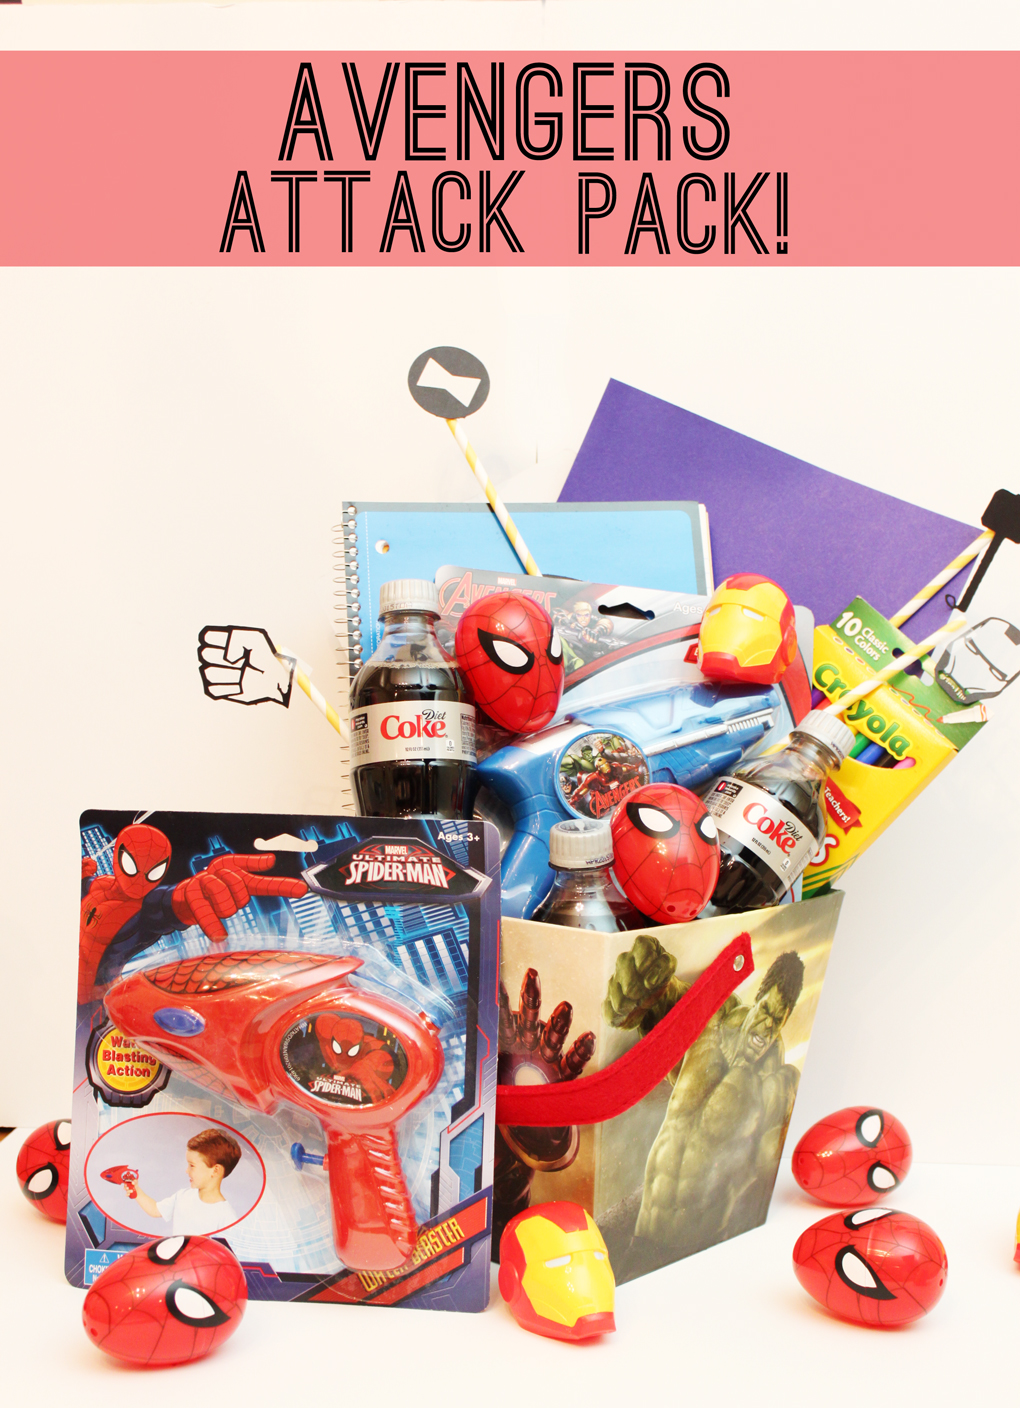 AVENGERS-Attack-Pack-1